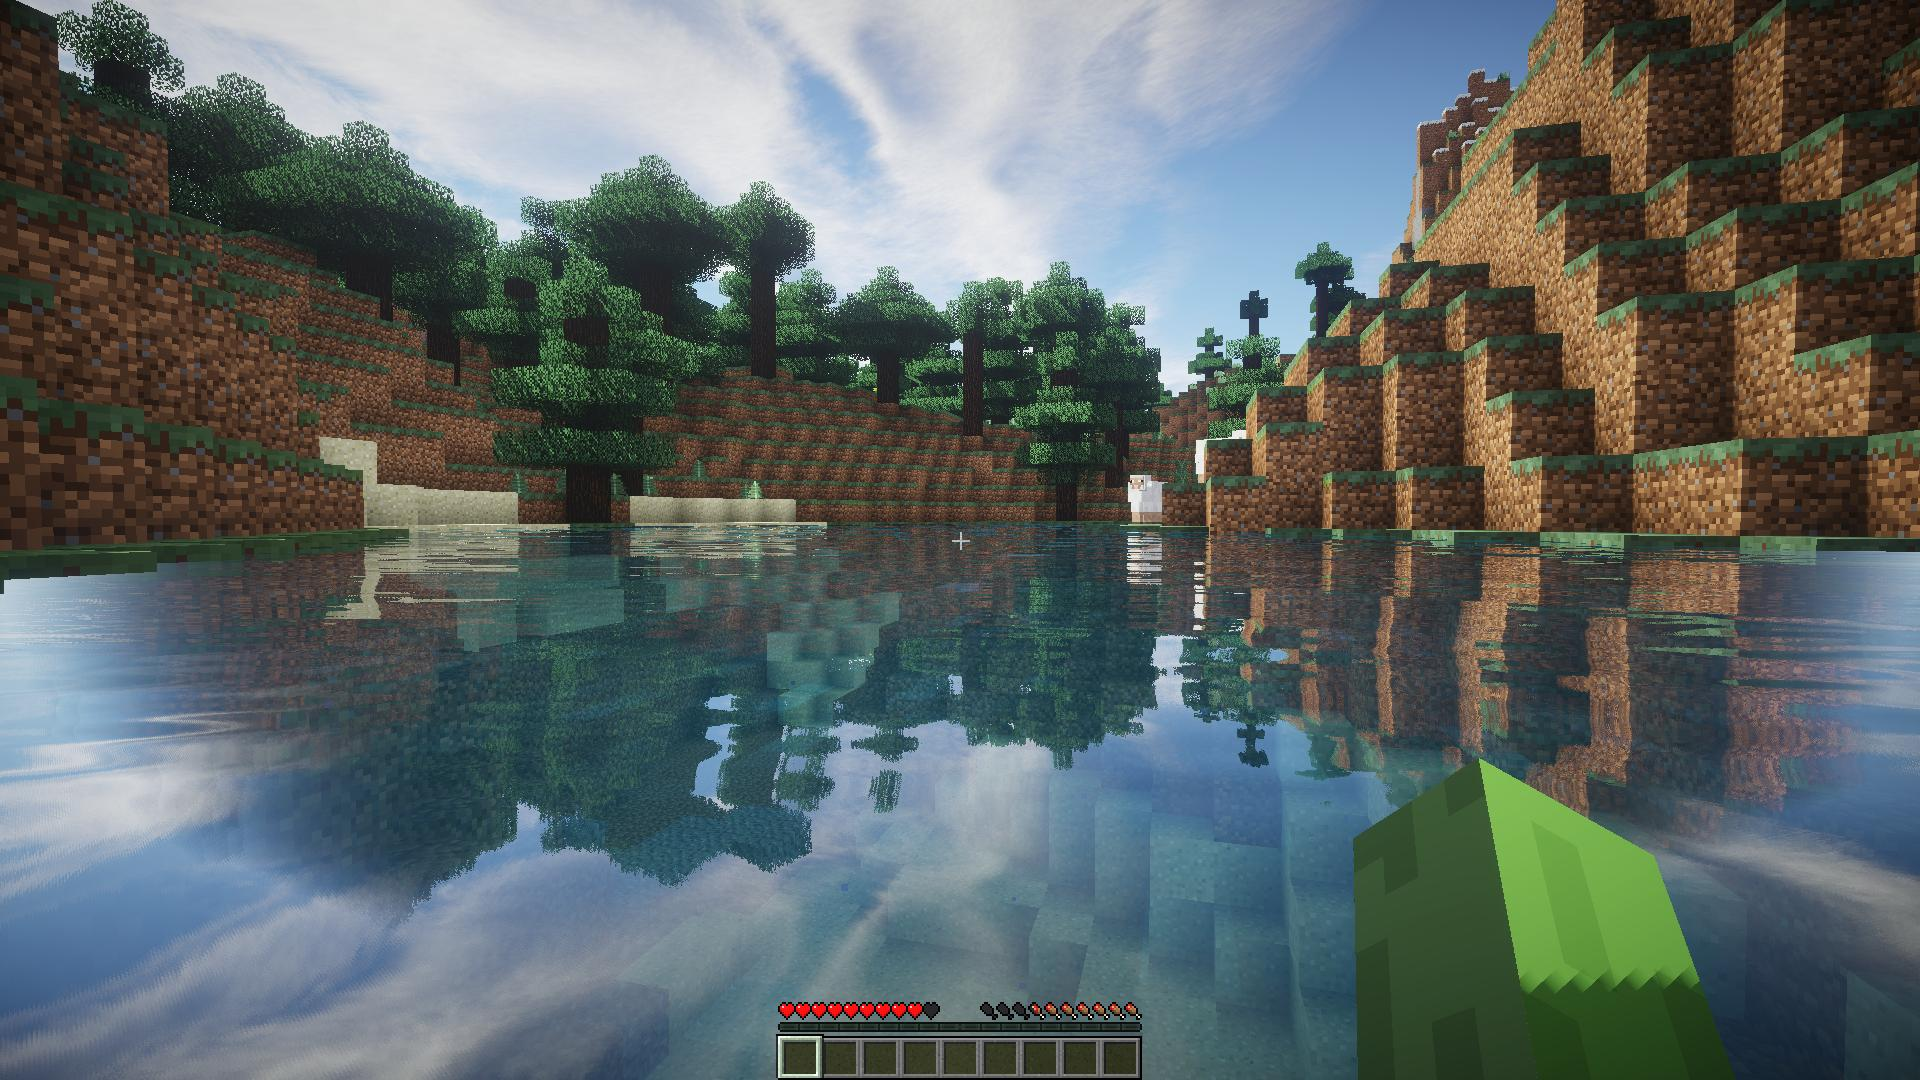 Minecraft Sphax Wallpaper Wallpapersafari